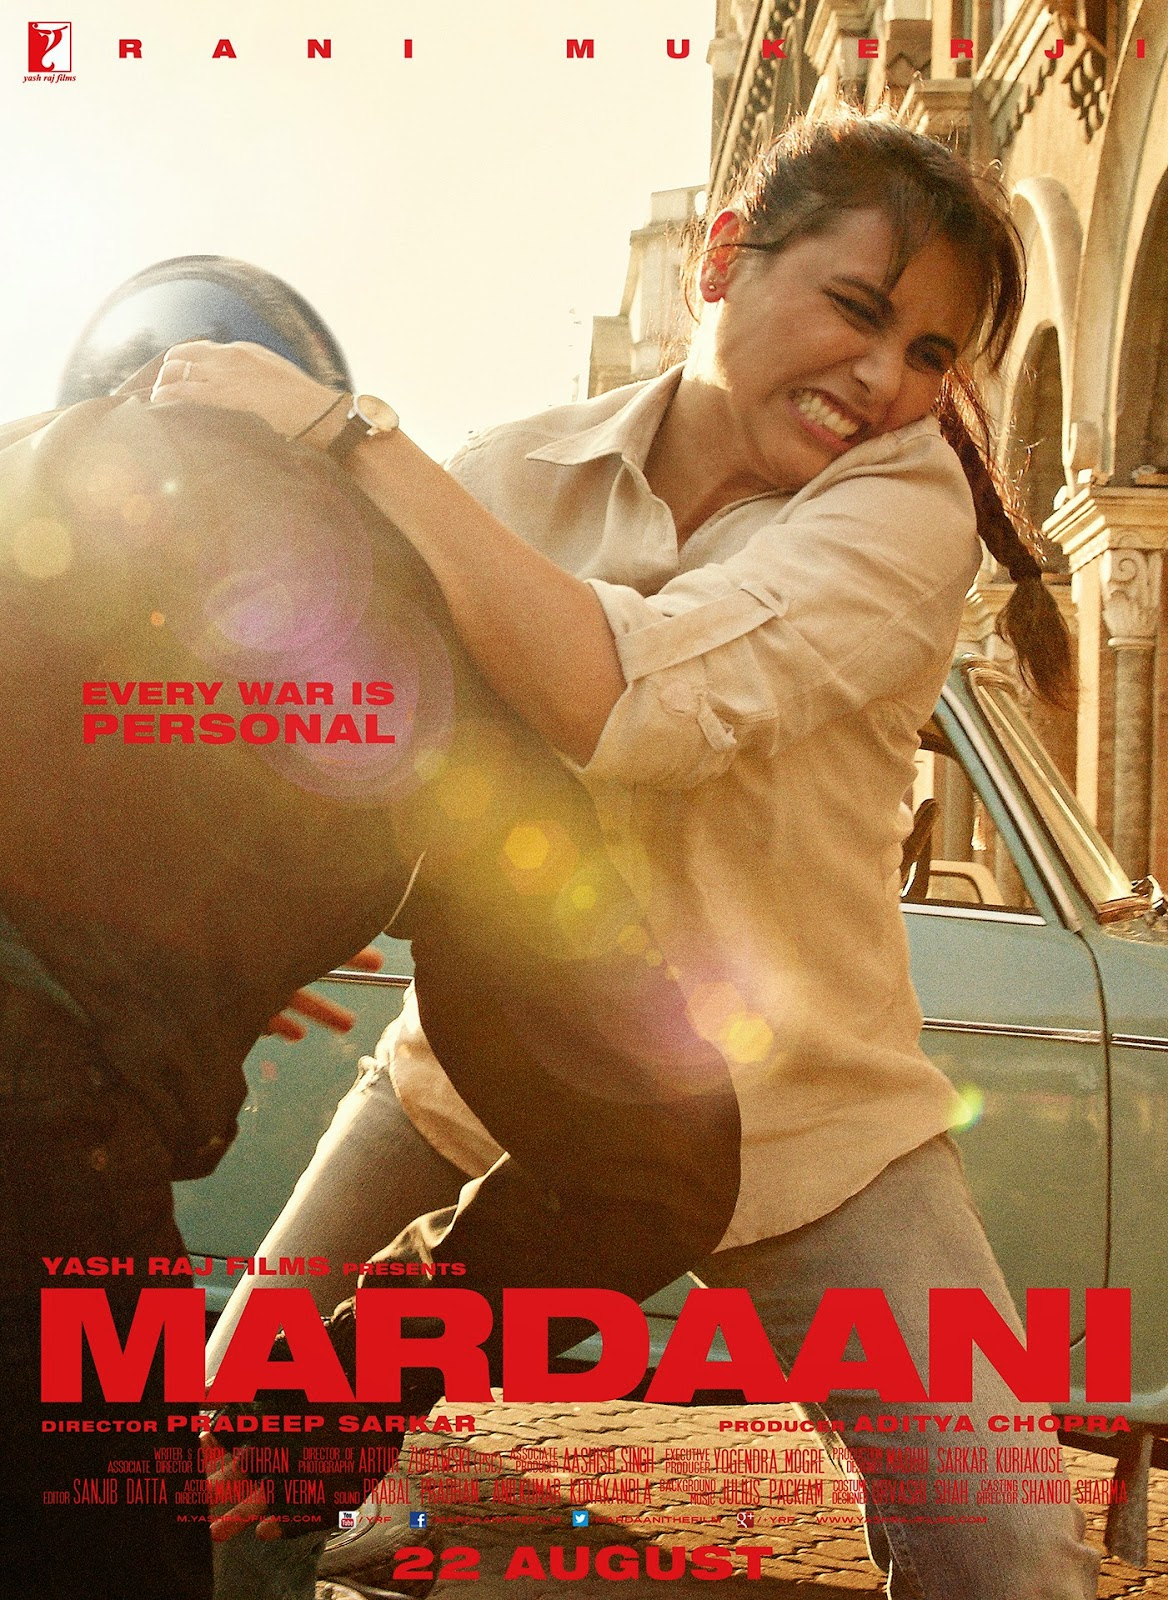 Mardaani 2014 Hindi Movie Watch Online